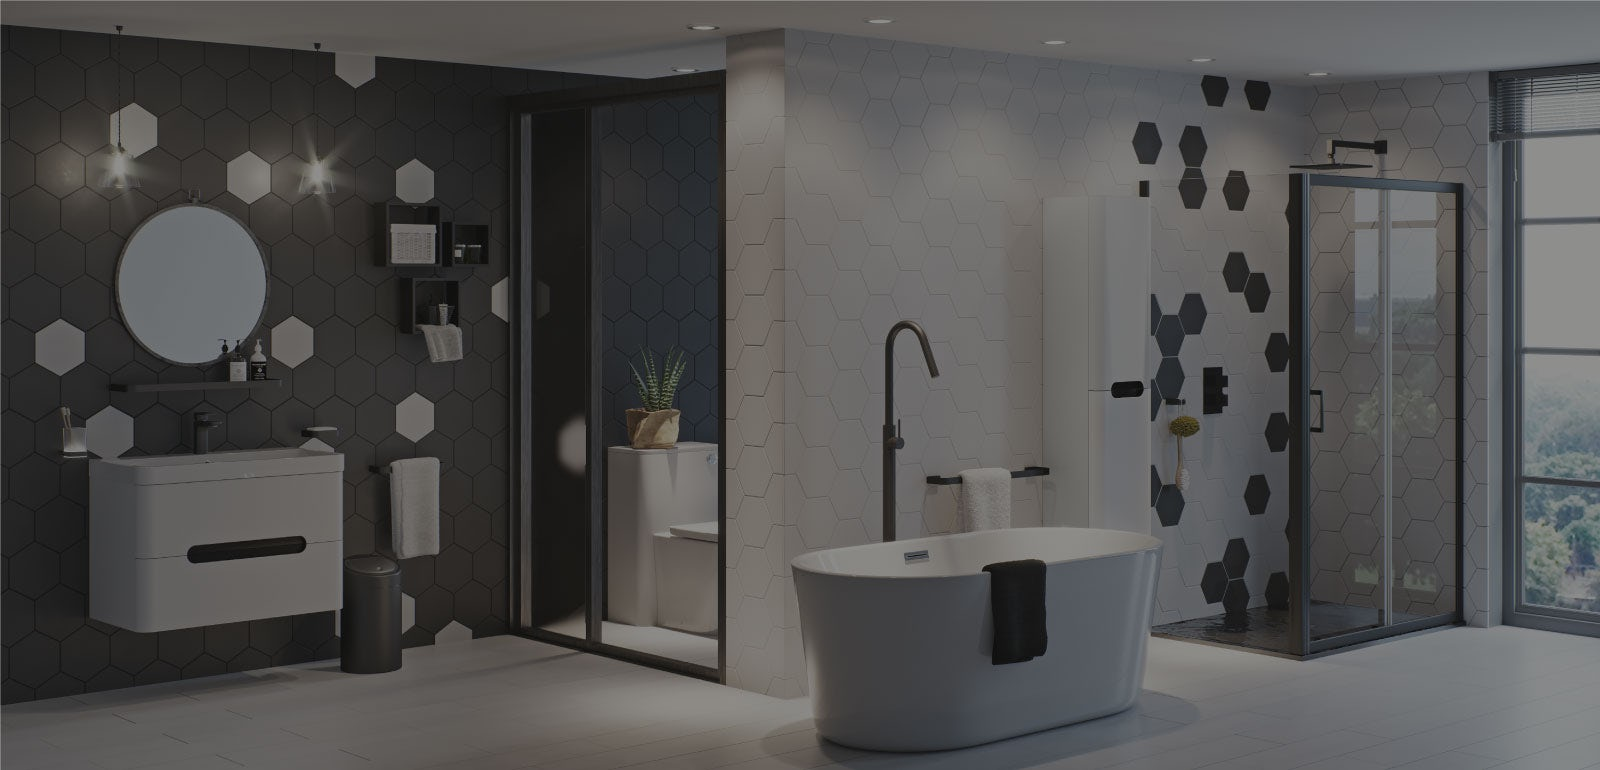 Bathroom Ideas: Be Bold with Maximum Monochrome